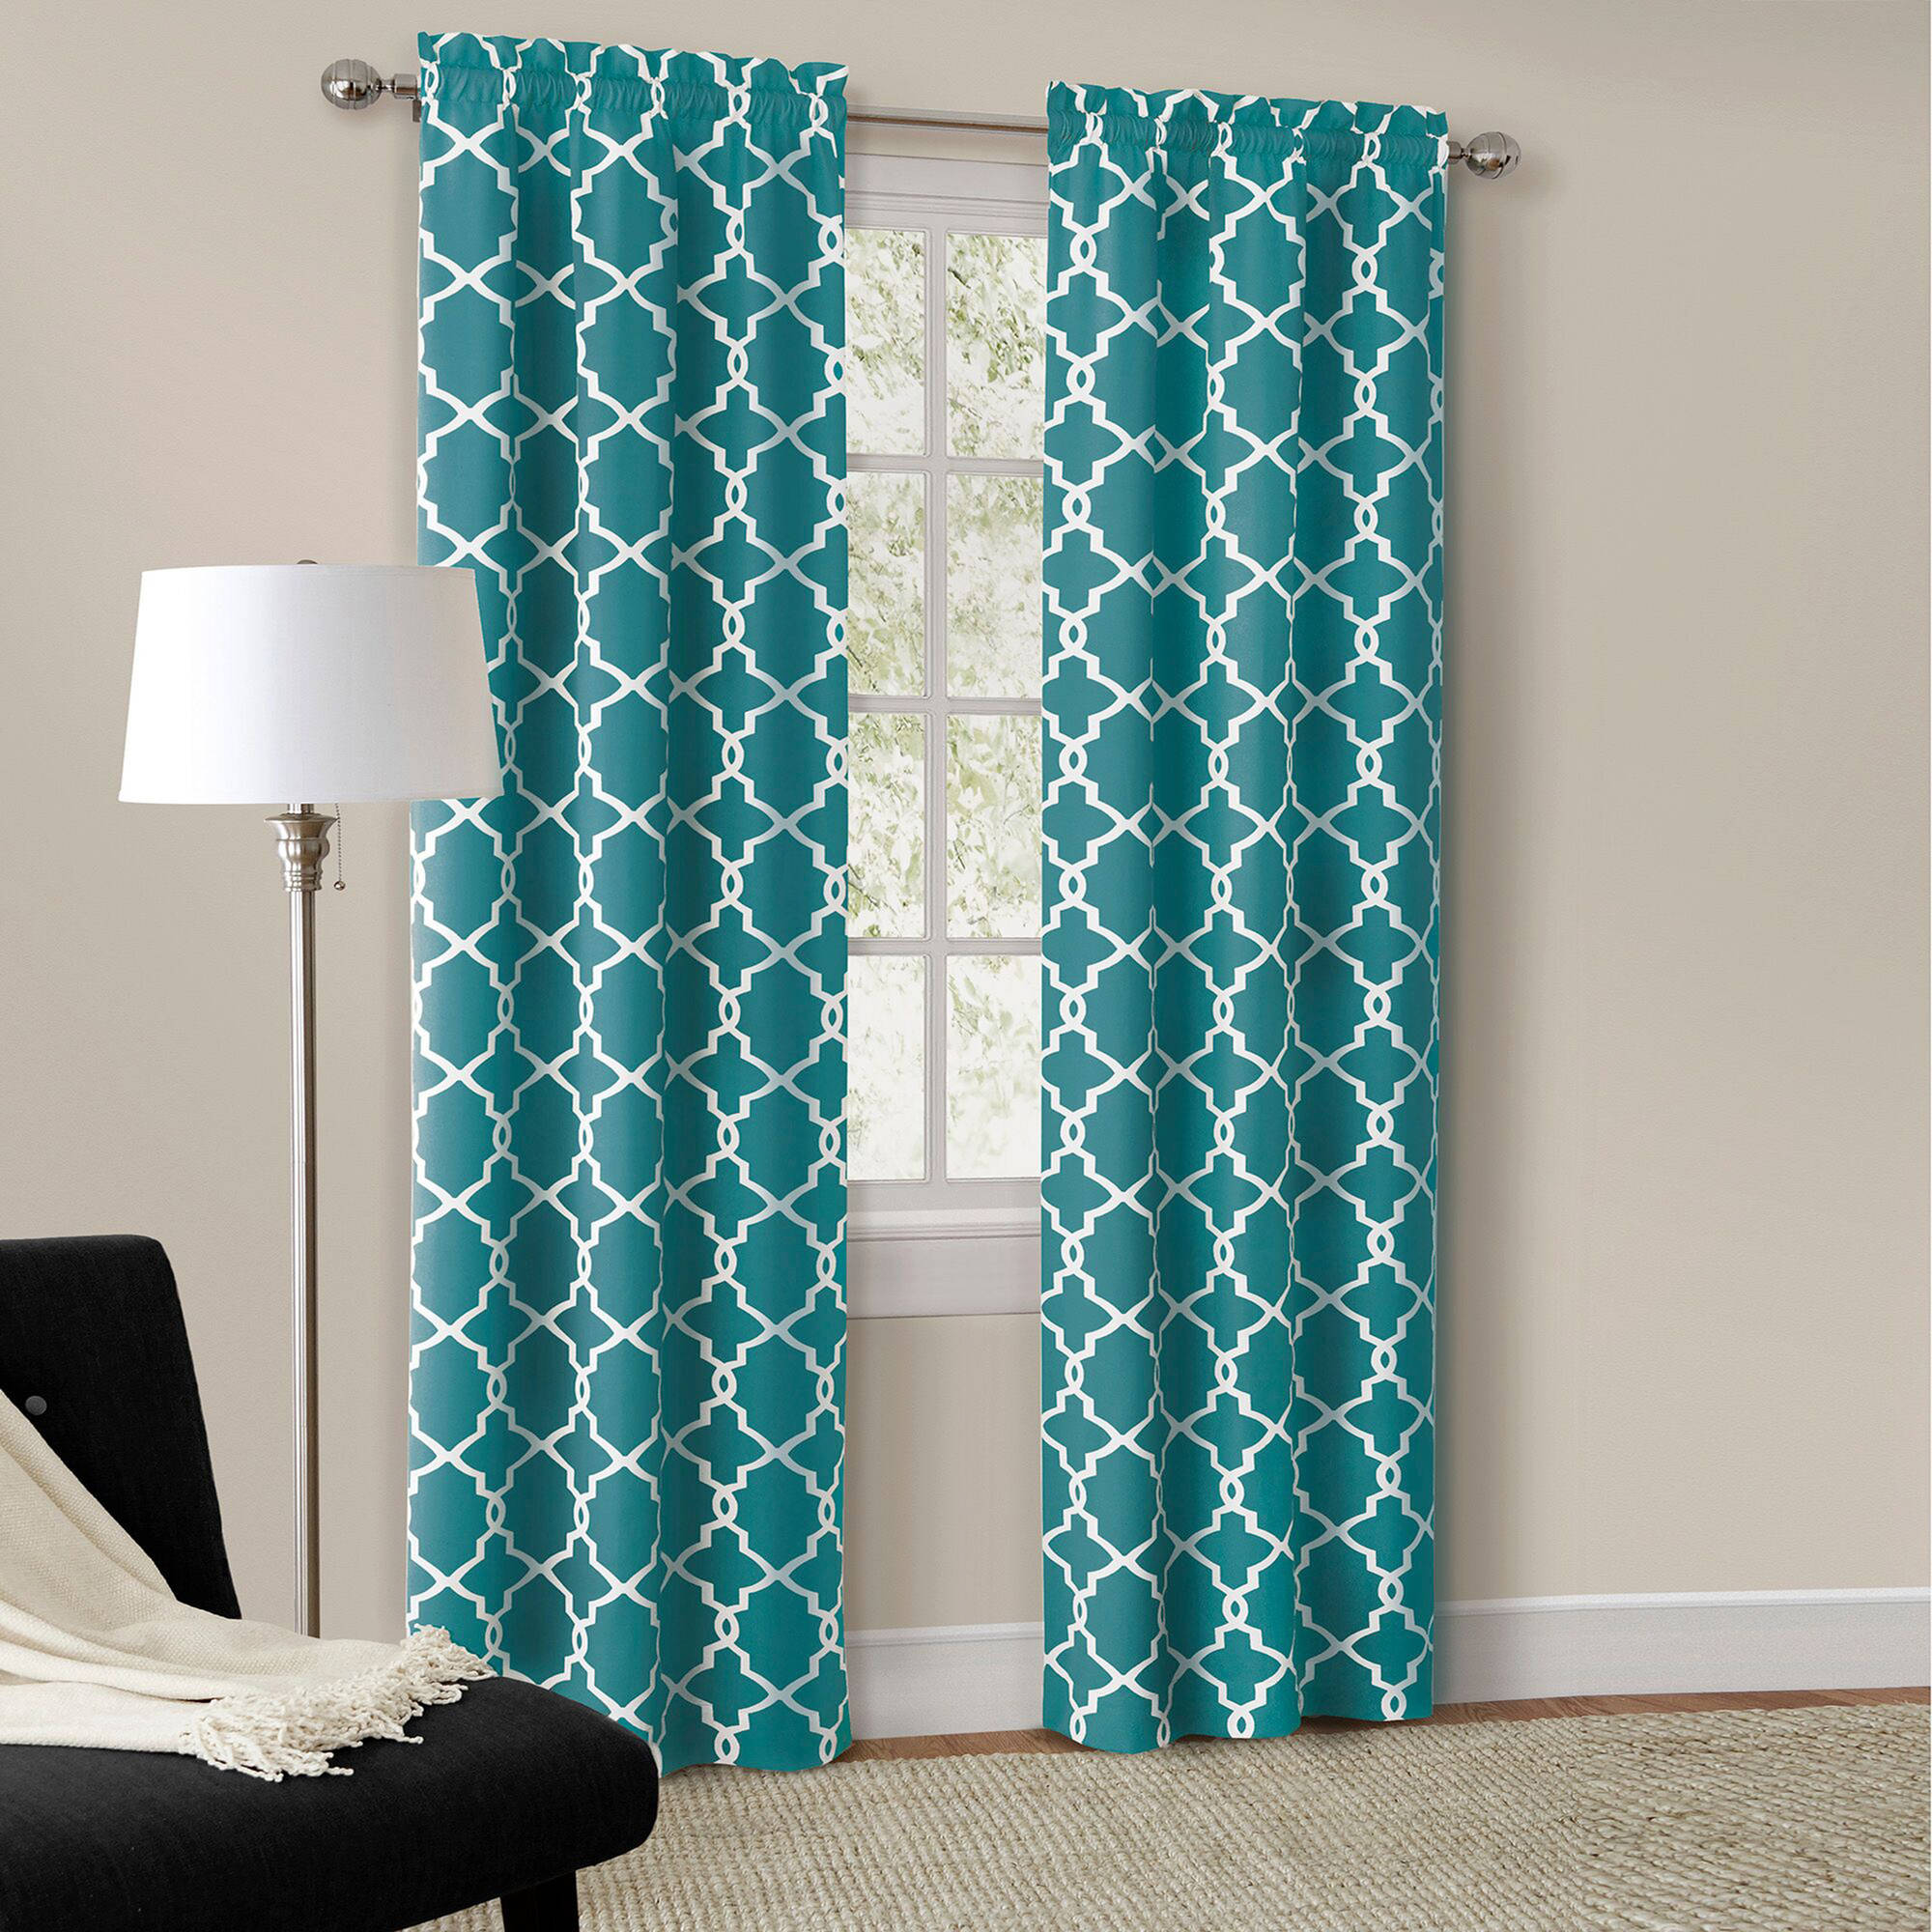 Mainstays Calix Fashion Window Curtain Set of 2 Walmart